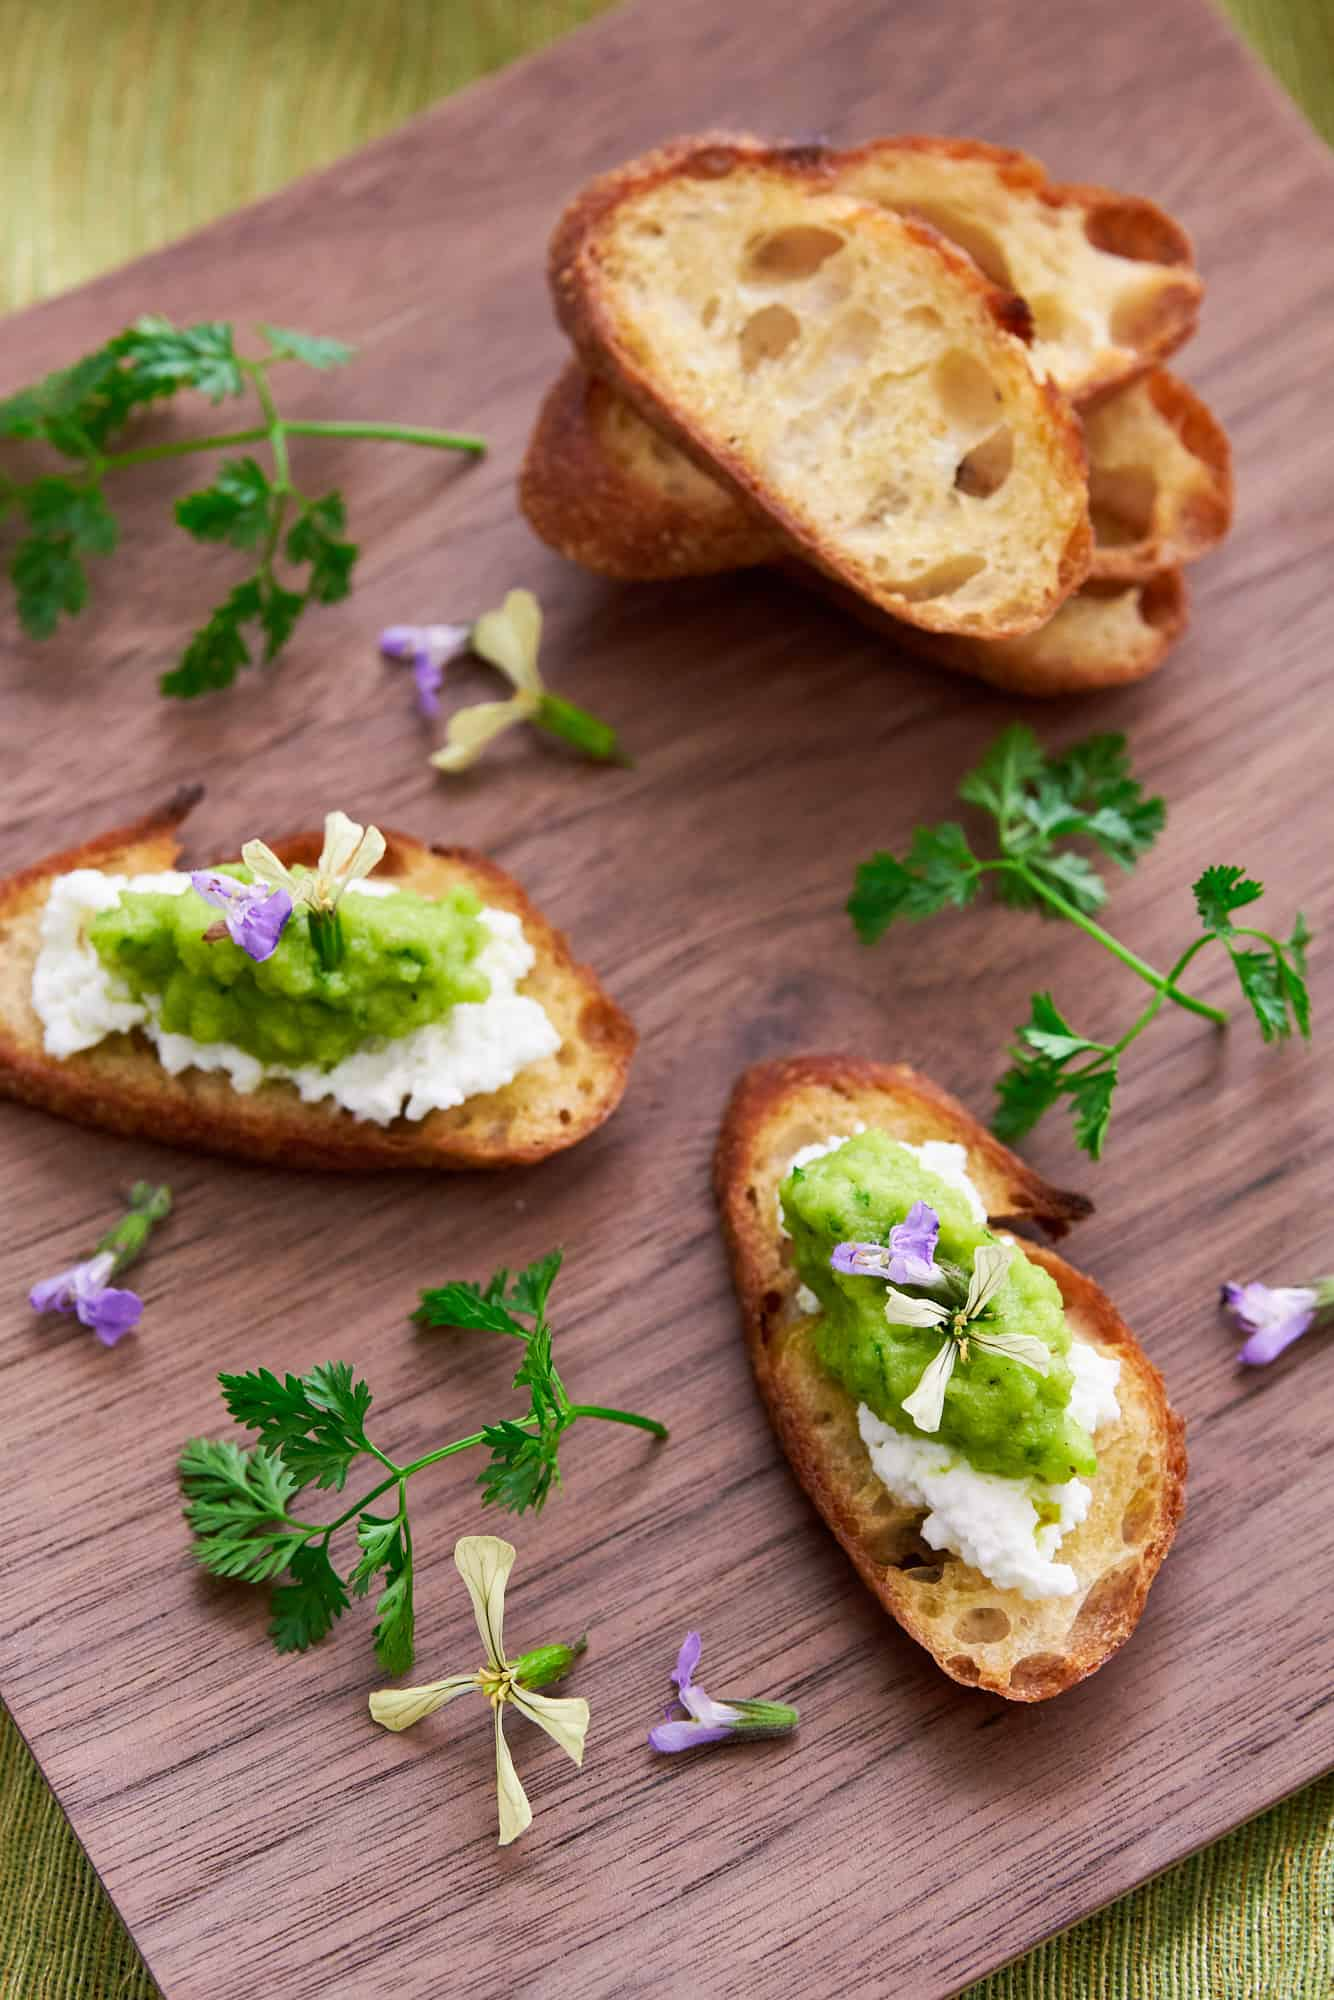 Delicious 5 ingredient Green Pea Pesto Recipe is the perfect spring canape on crostini, spread in sandwiches, or tossed with pasta.